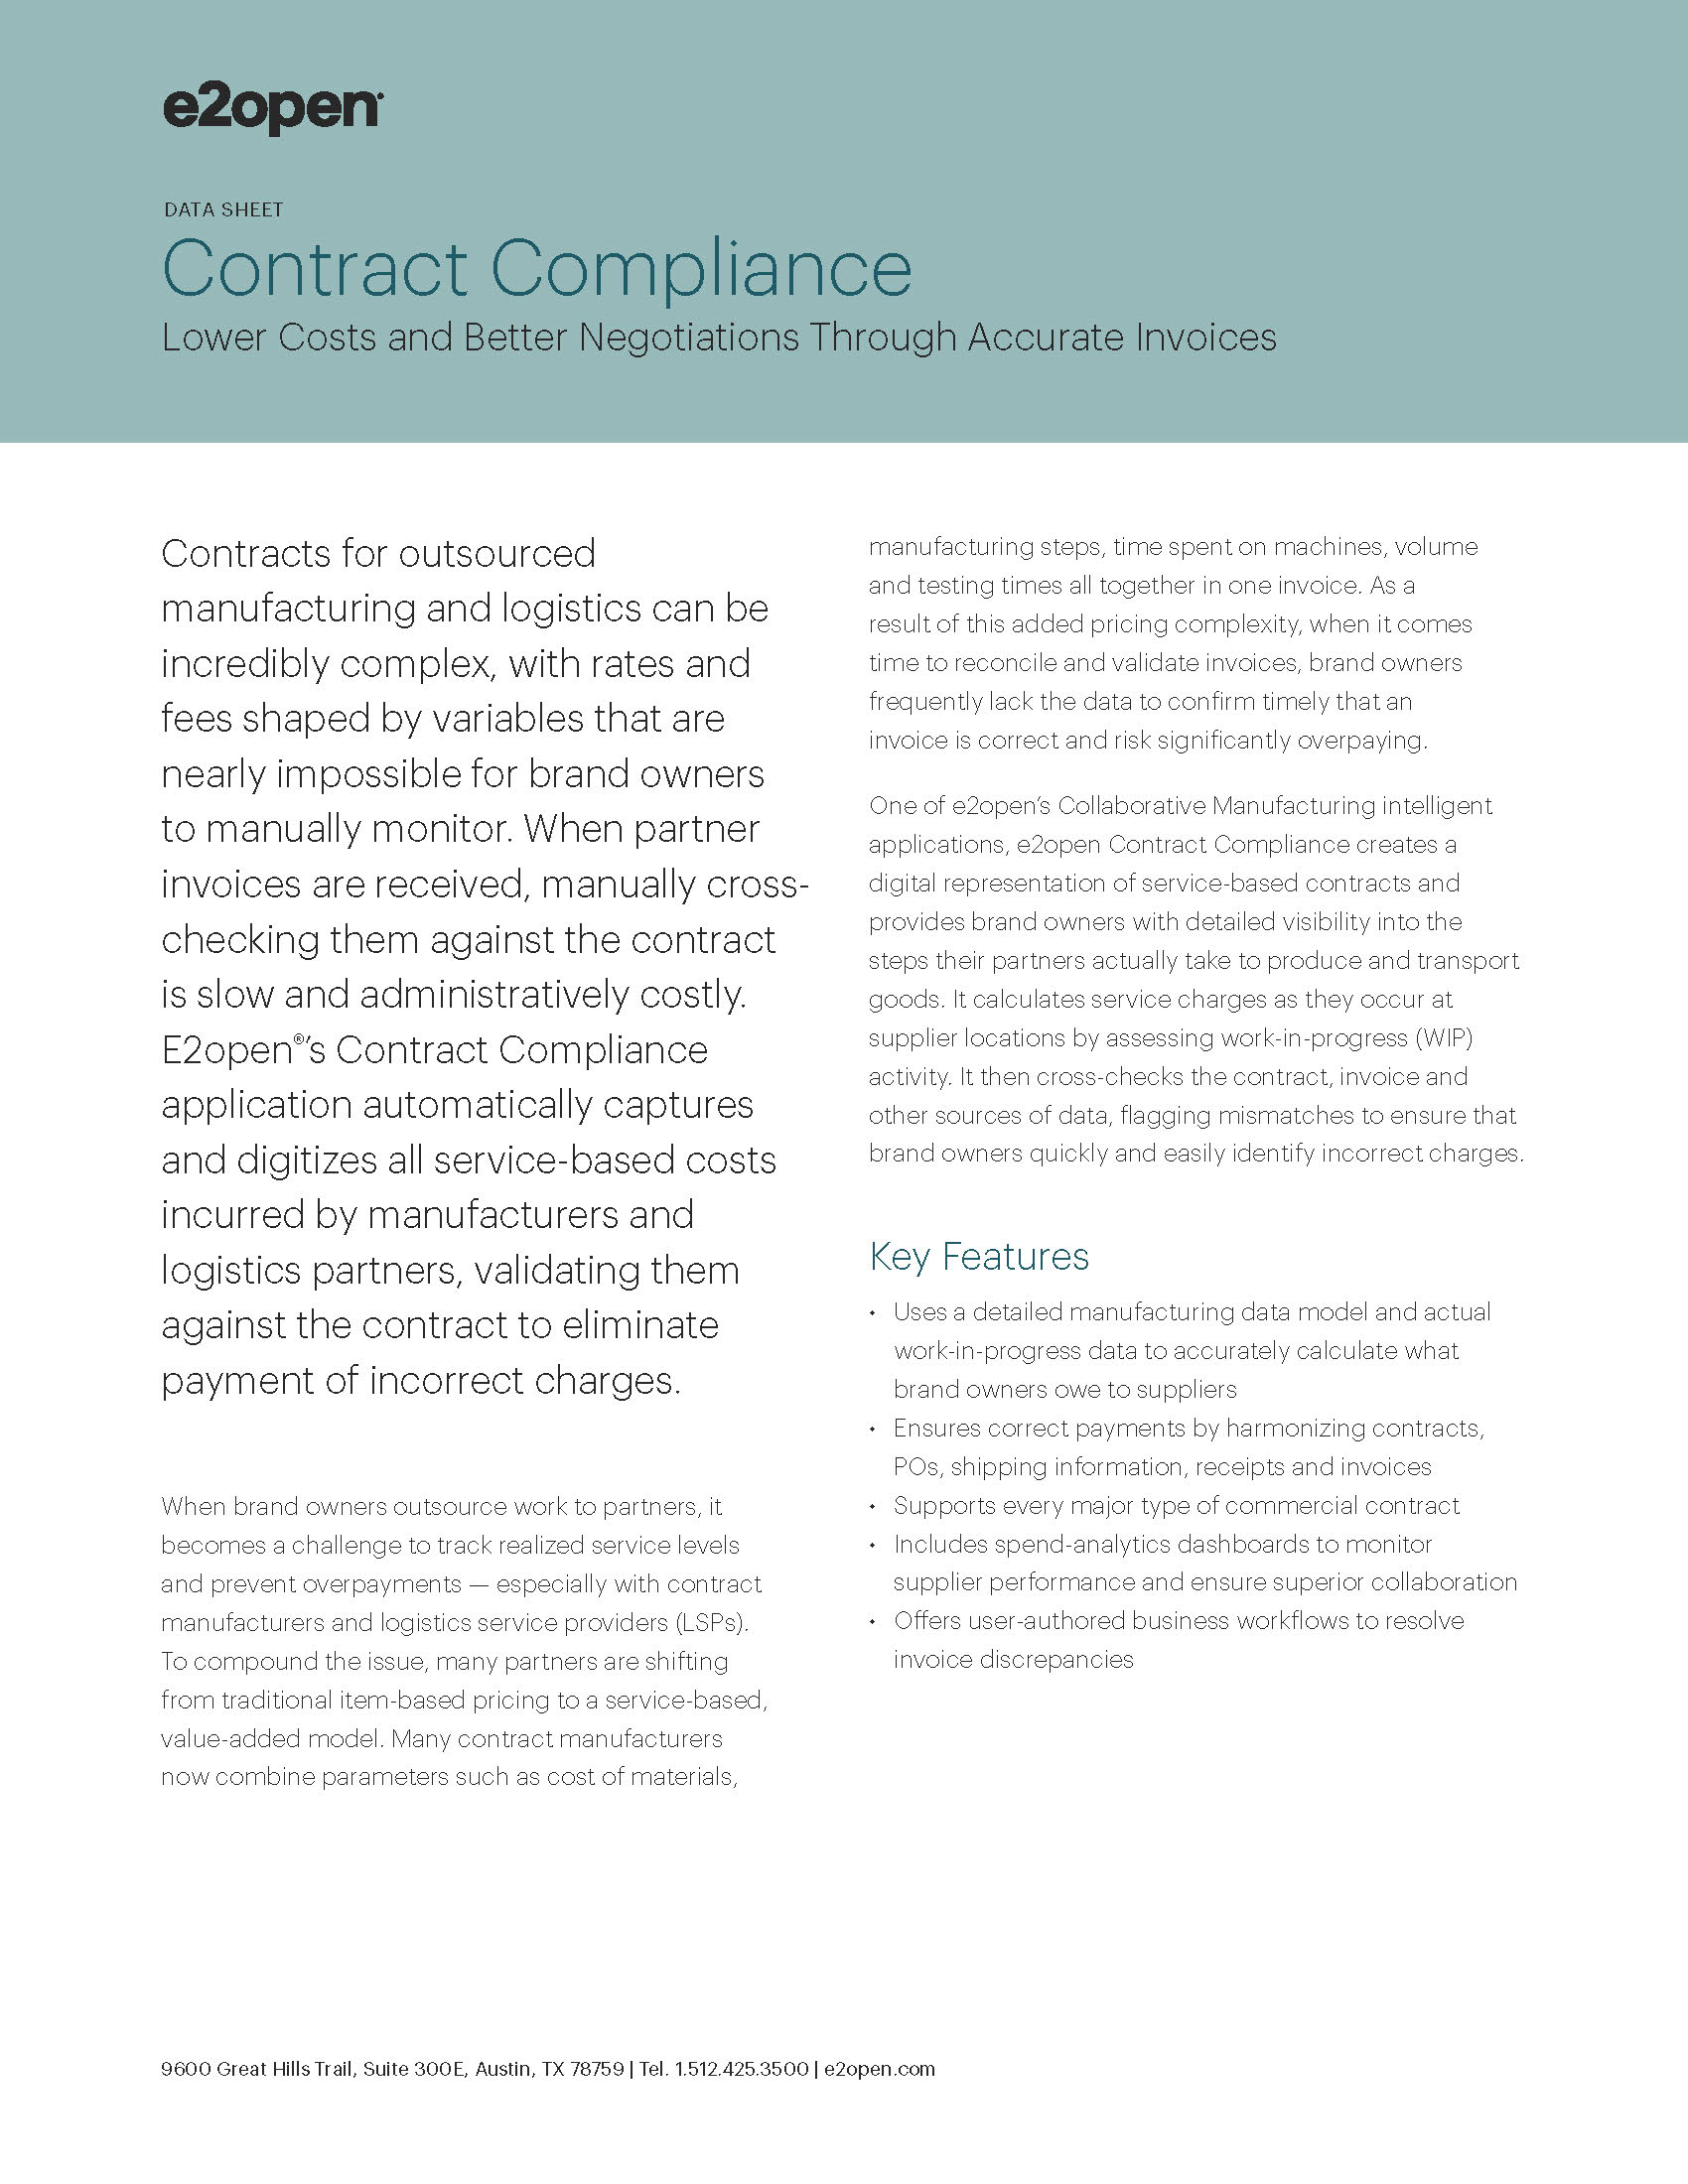 E2open Contract Compliance